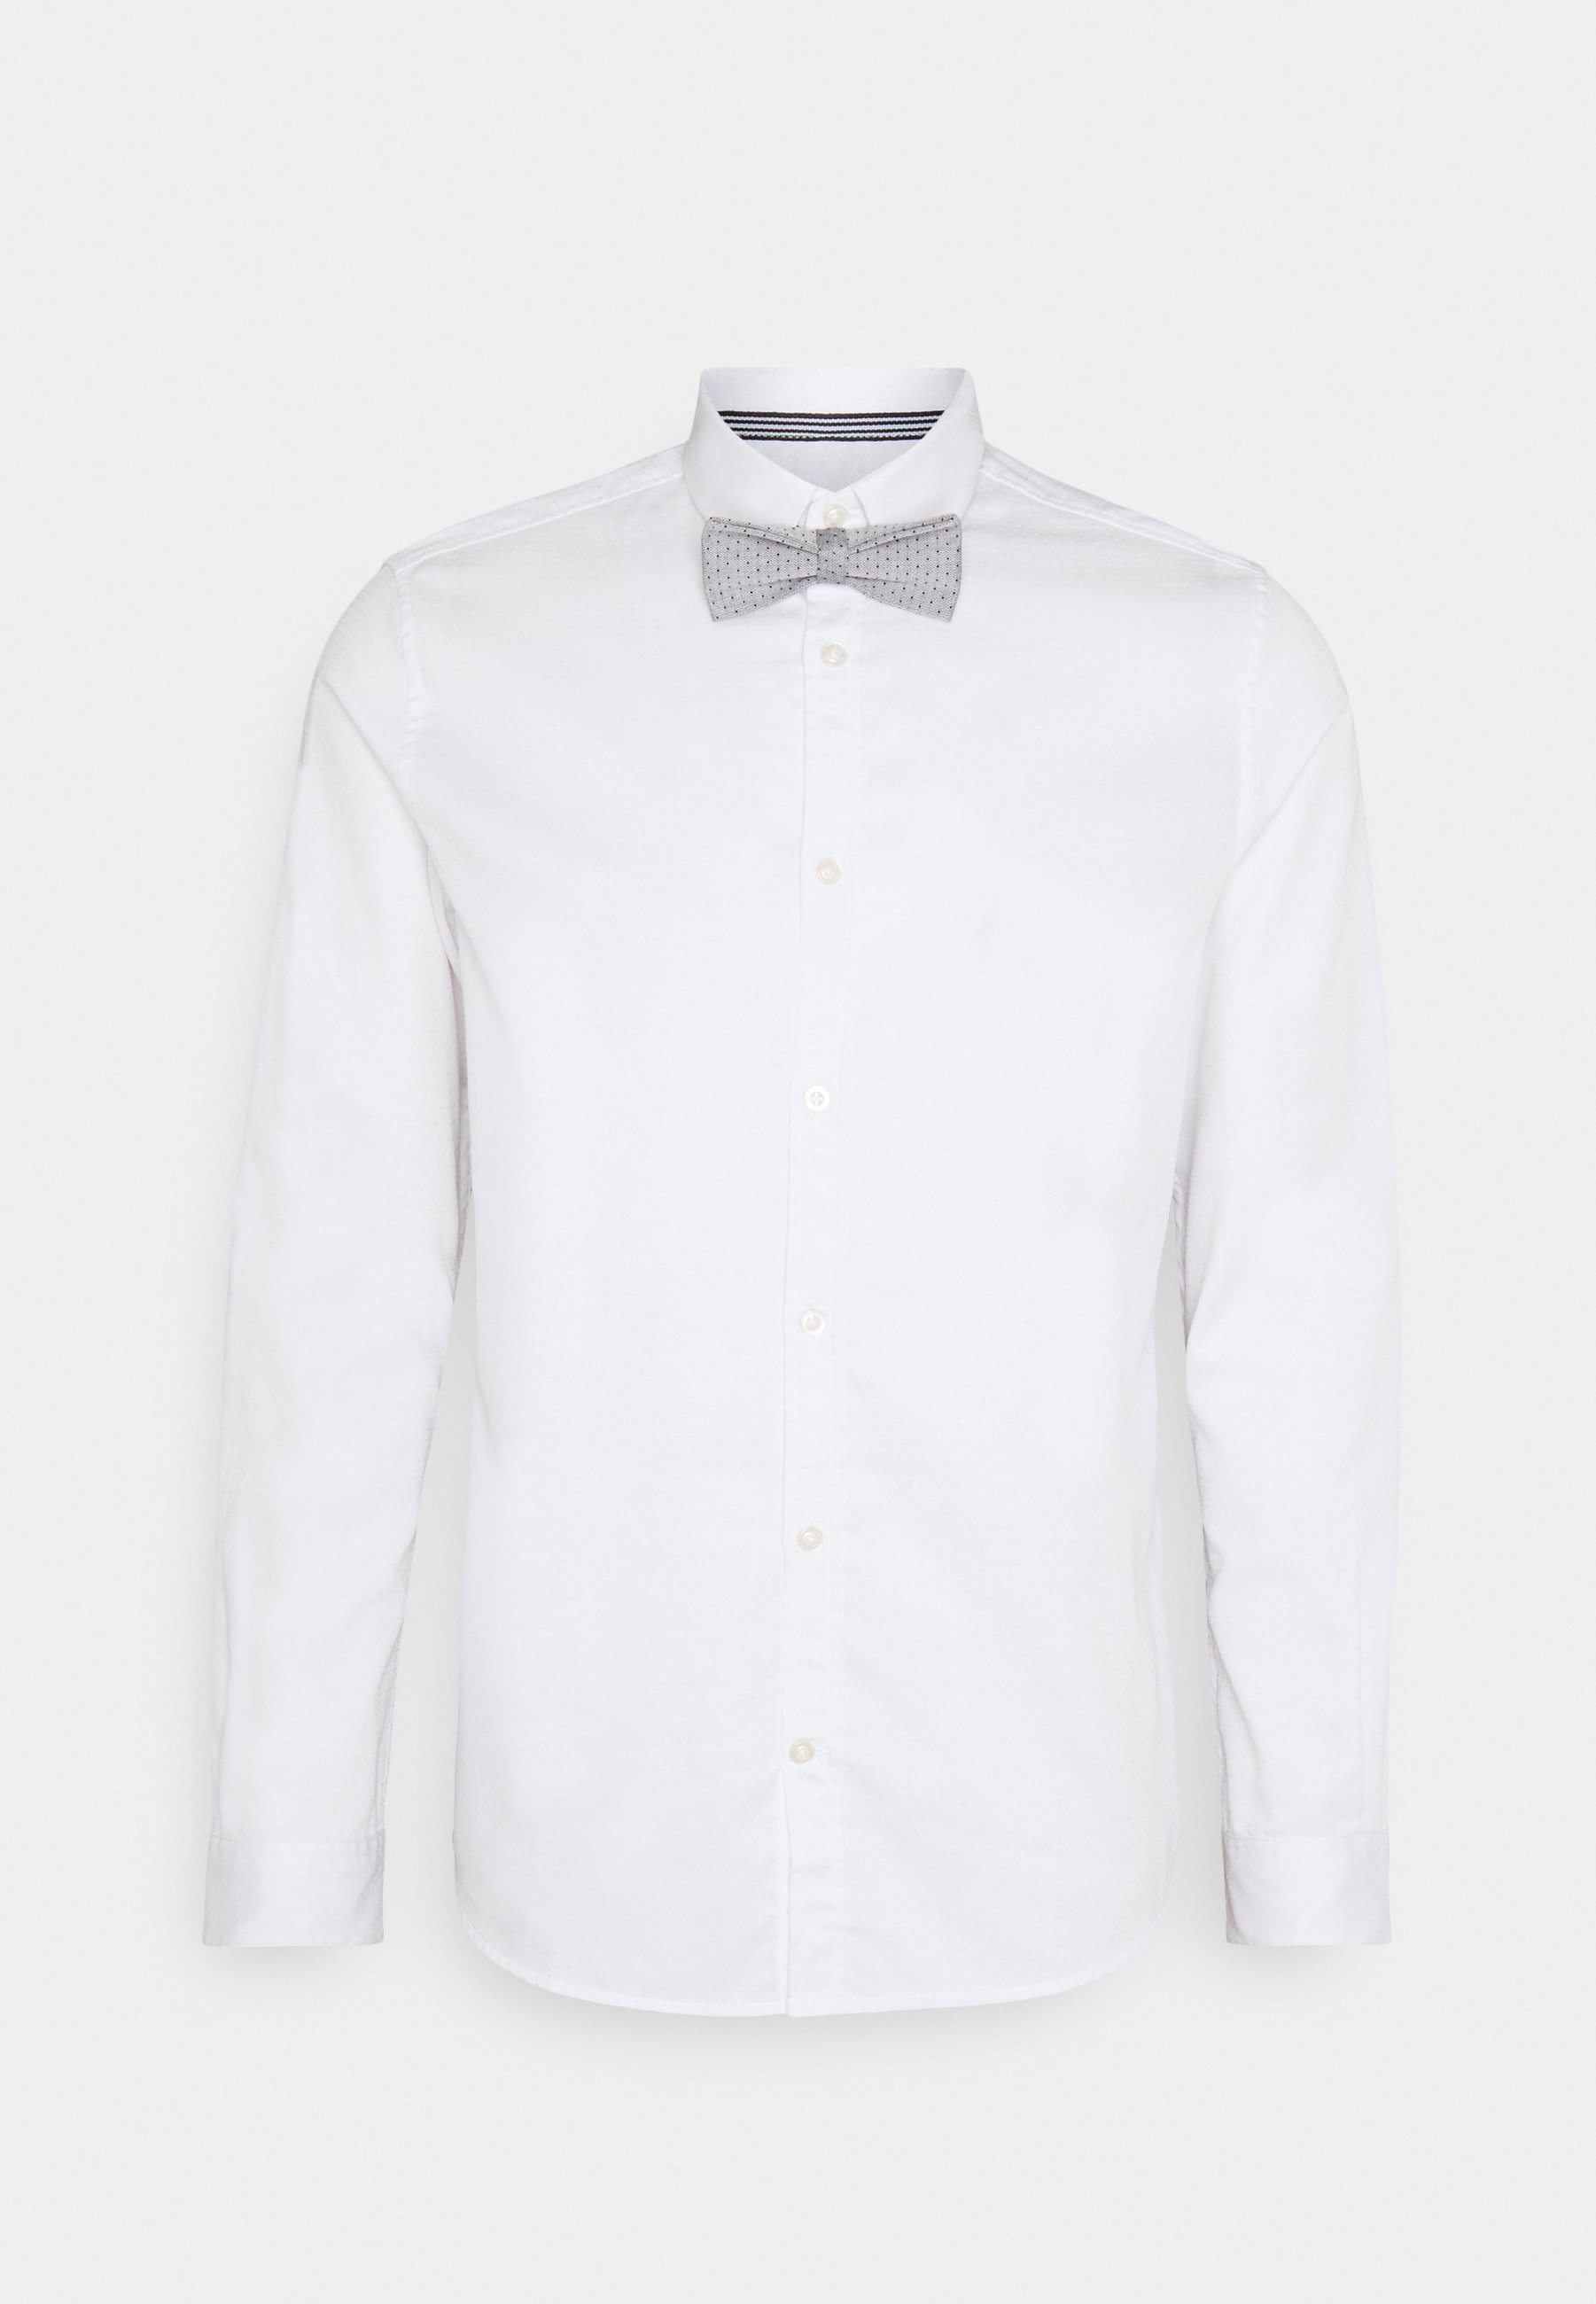 Homme FITTED EASY CARE WITH BOWTIE - Chemise